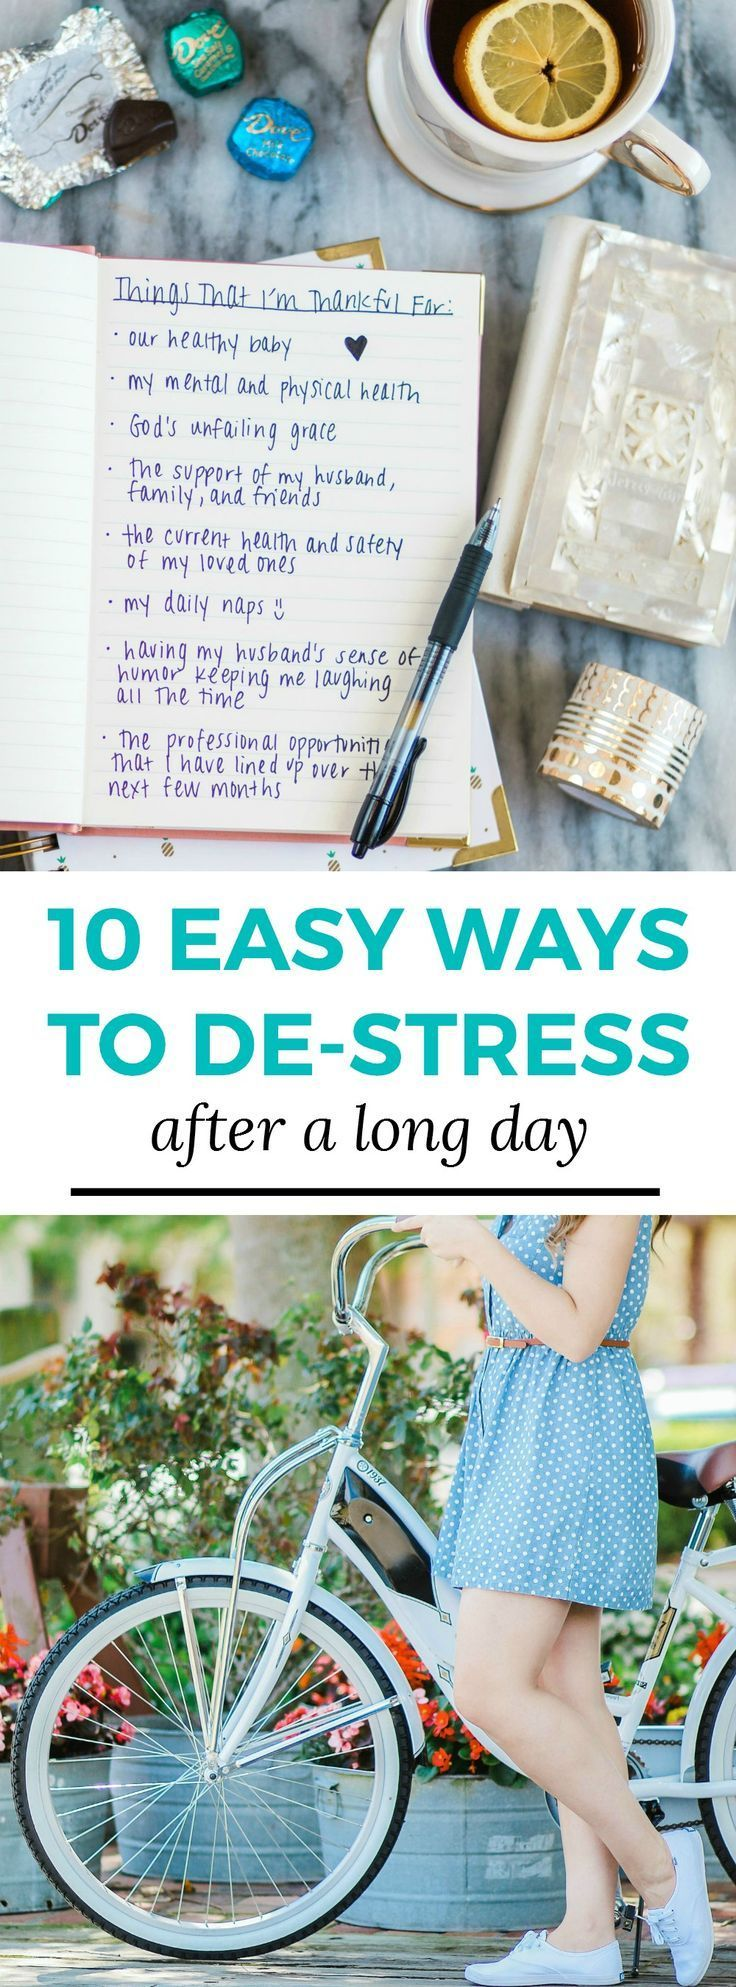 10 easy ways to de-stress after a long day - including any form of exercise, like a leisurely bike ride in the park and unwinding with chocolate and tea while writing in your gratitude journal! #unwindwithdove sponsored by @DOVEChocolateUS | Dove chocolate, stress relief, how to relieve stress, how to calm down, gold candle, stress relief tips, cute bike, white bicycle, white bike, polka dot dress, spring flowers